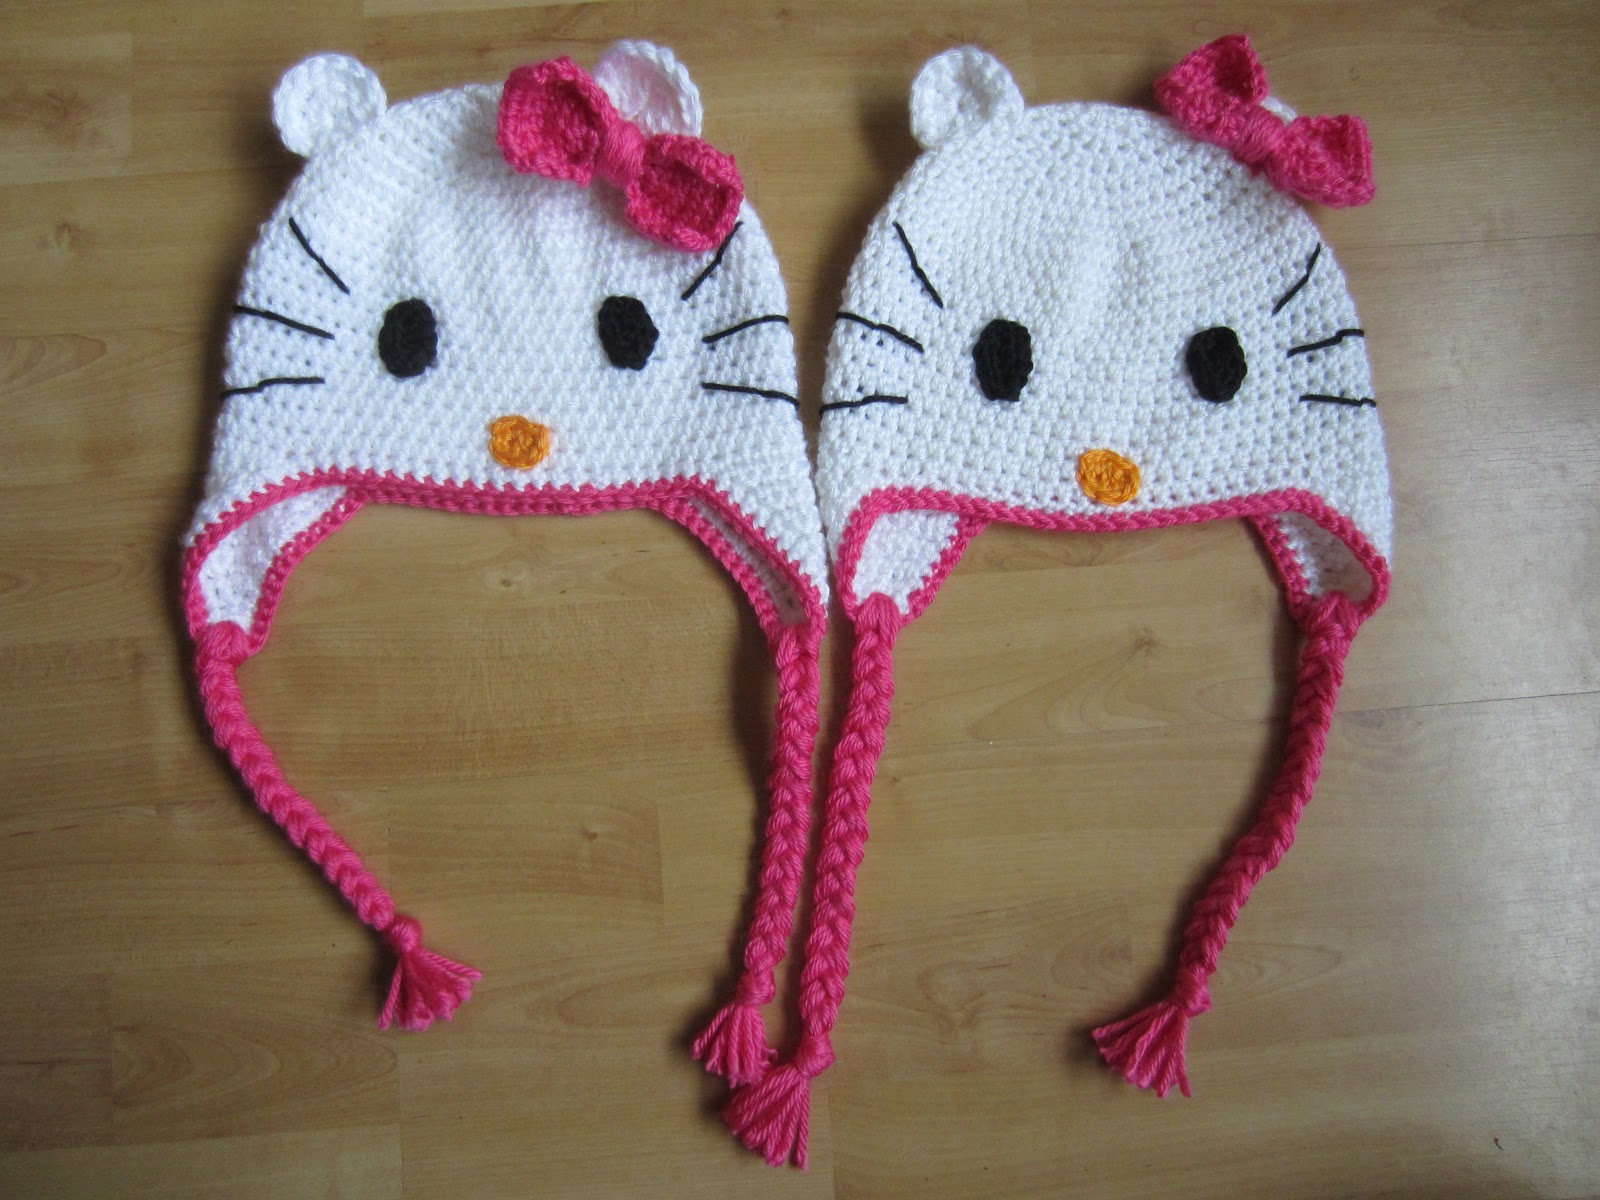 Free Crochet Pattern For A Hello Kitty Hat : Lutje Haakt & Meer: Hello kitty mutsen voor goede doel